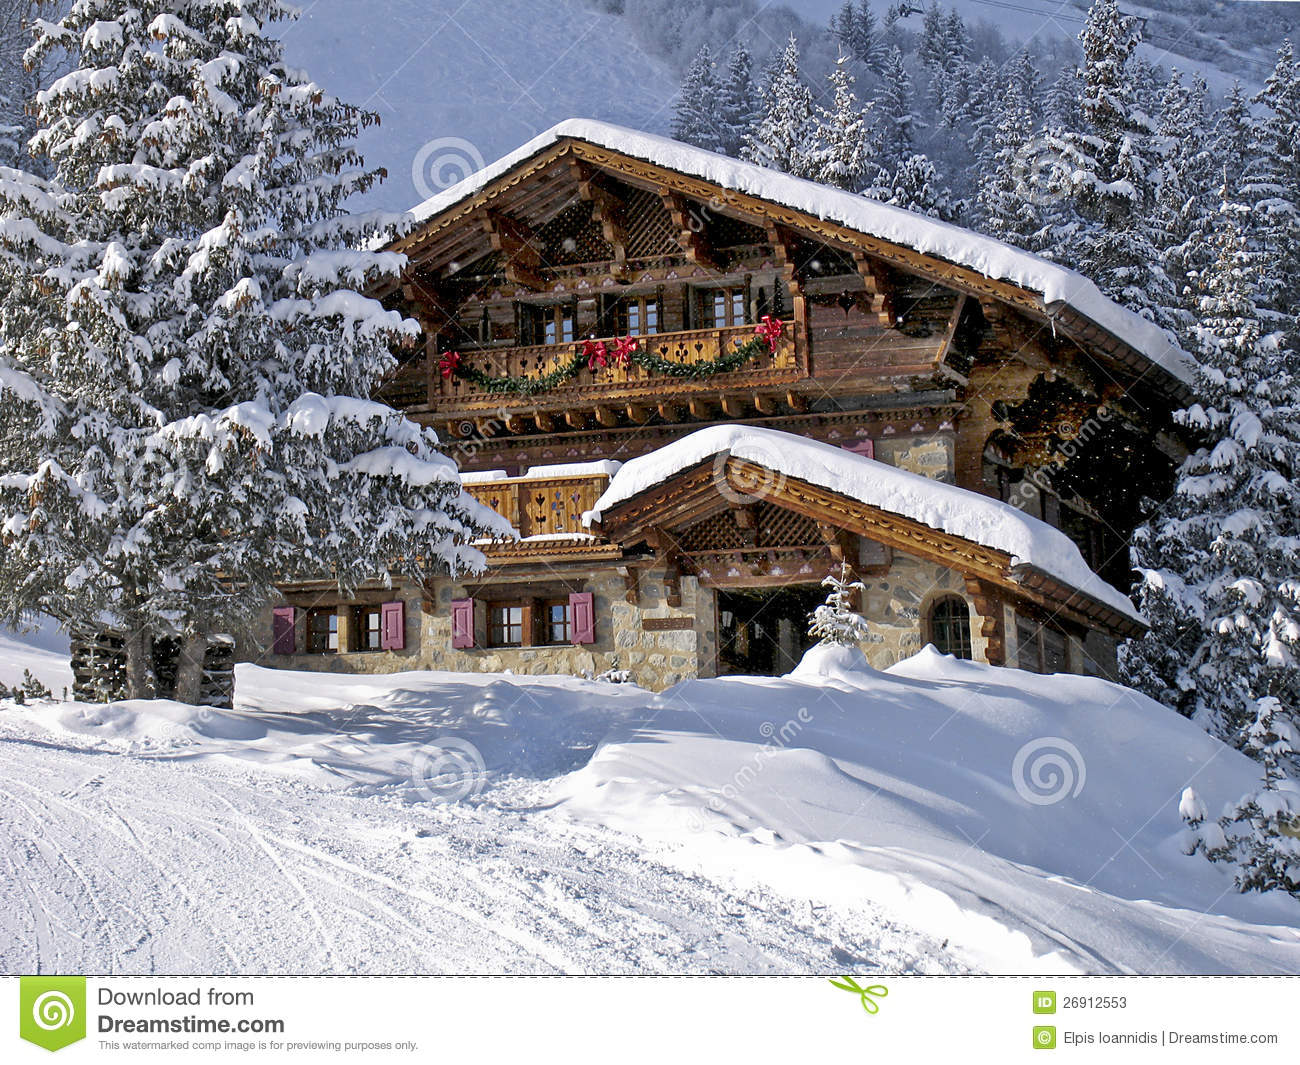 Small Farm In The Swiss Alps Image 2456906 furthermore Get Cozy At Vacation Cabins Near Mount Rainier as well Tourism G32823 Ontario California Vacations in addition Bristol Mountain Timber Frame Cabin likewise Gulmarg Ski Resorts Srinagar Kashmir India Image 9674862. on mountain vacation house plans